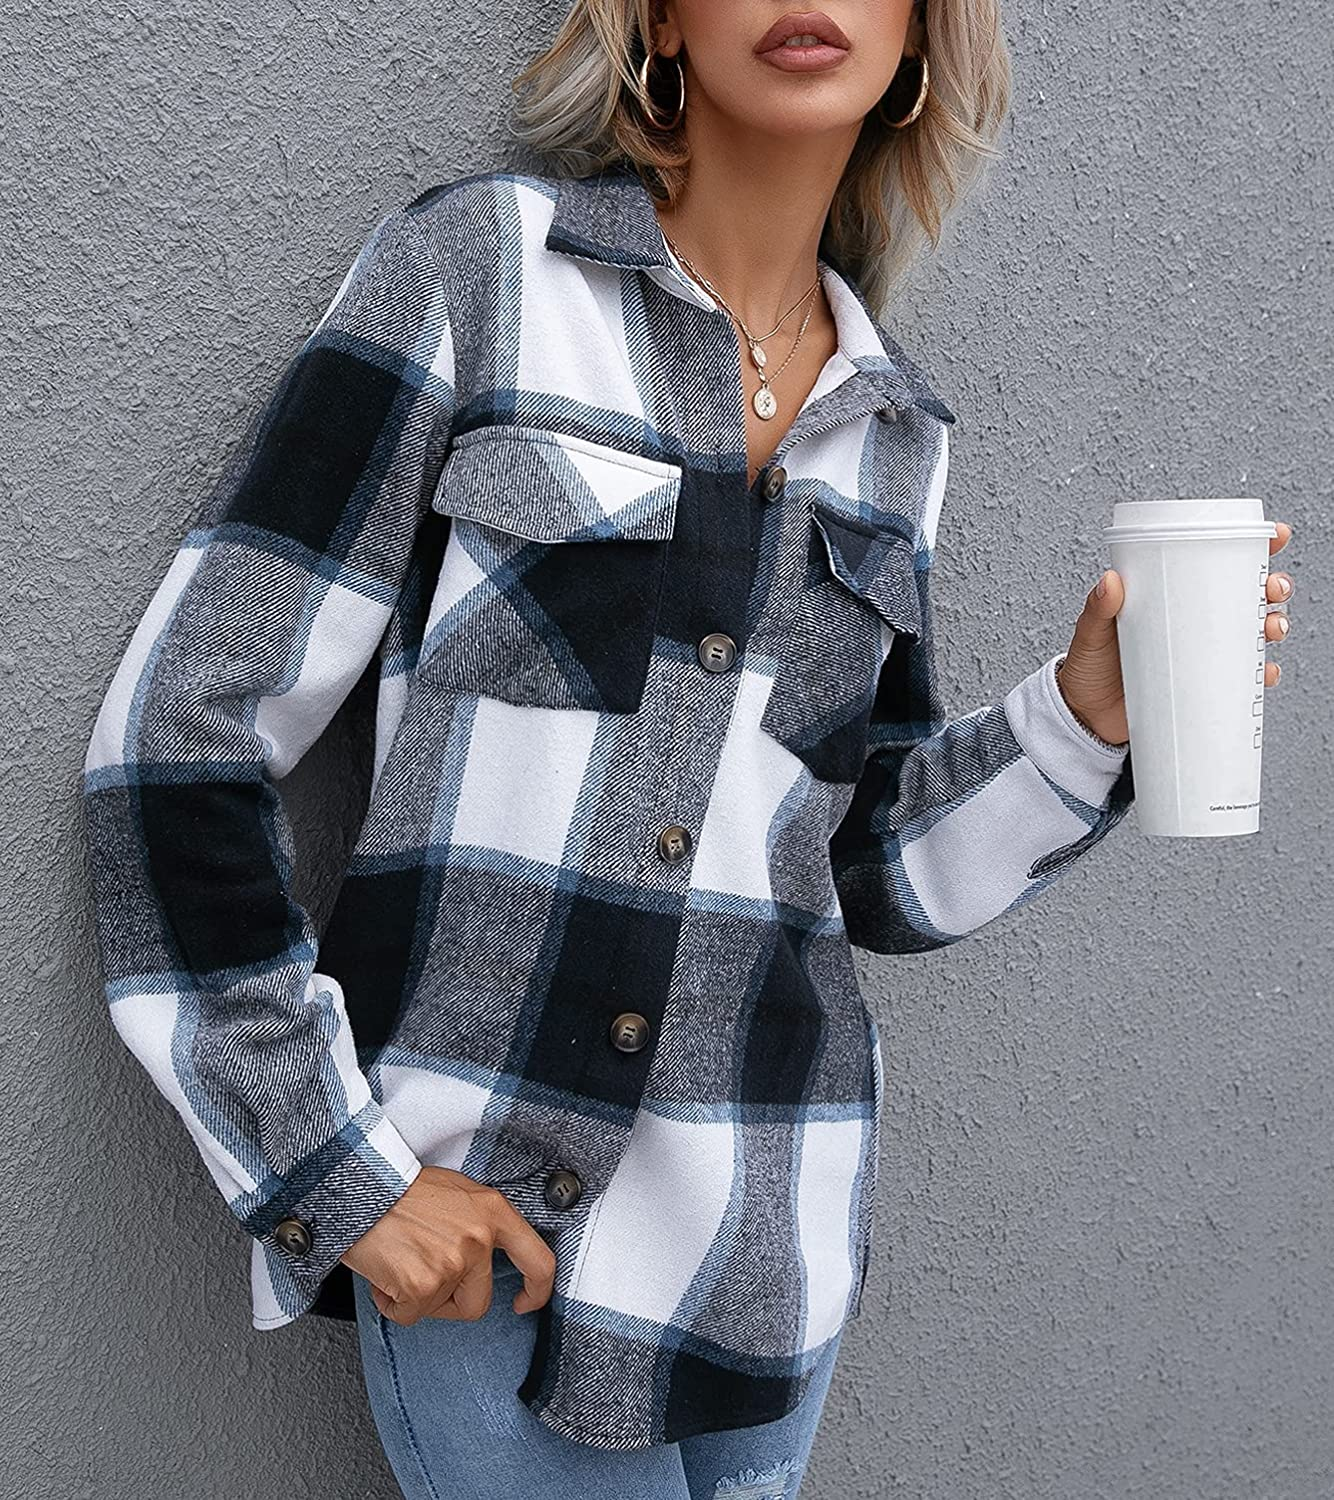 HDLTE Women Button Down Plaid Flannel Blouse Tops Casual Roll Up Long Sleeve Shirt Tops with Pockets